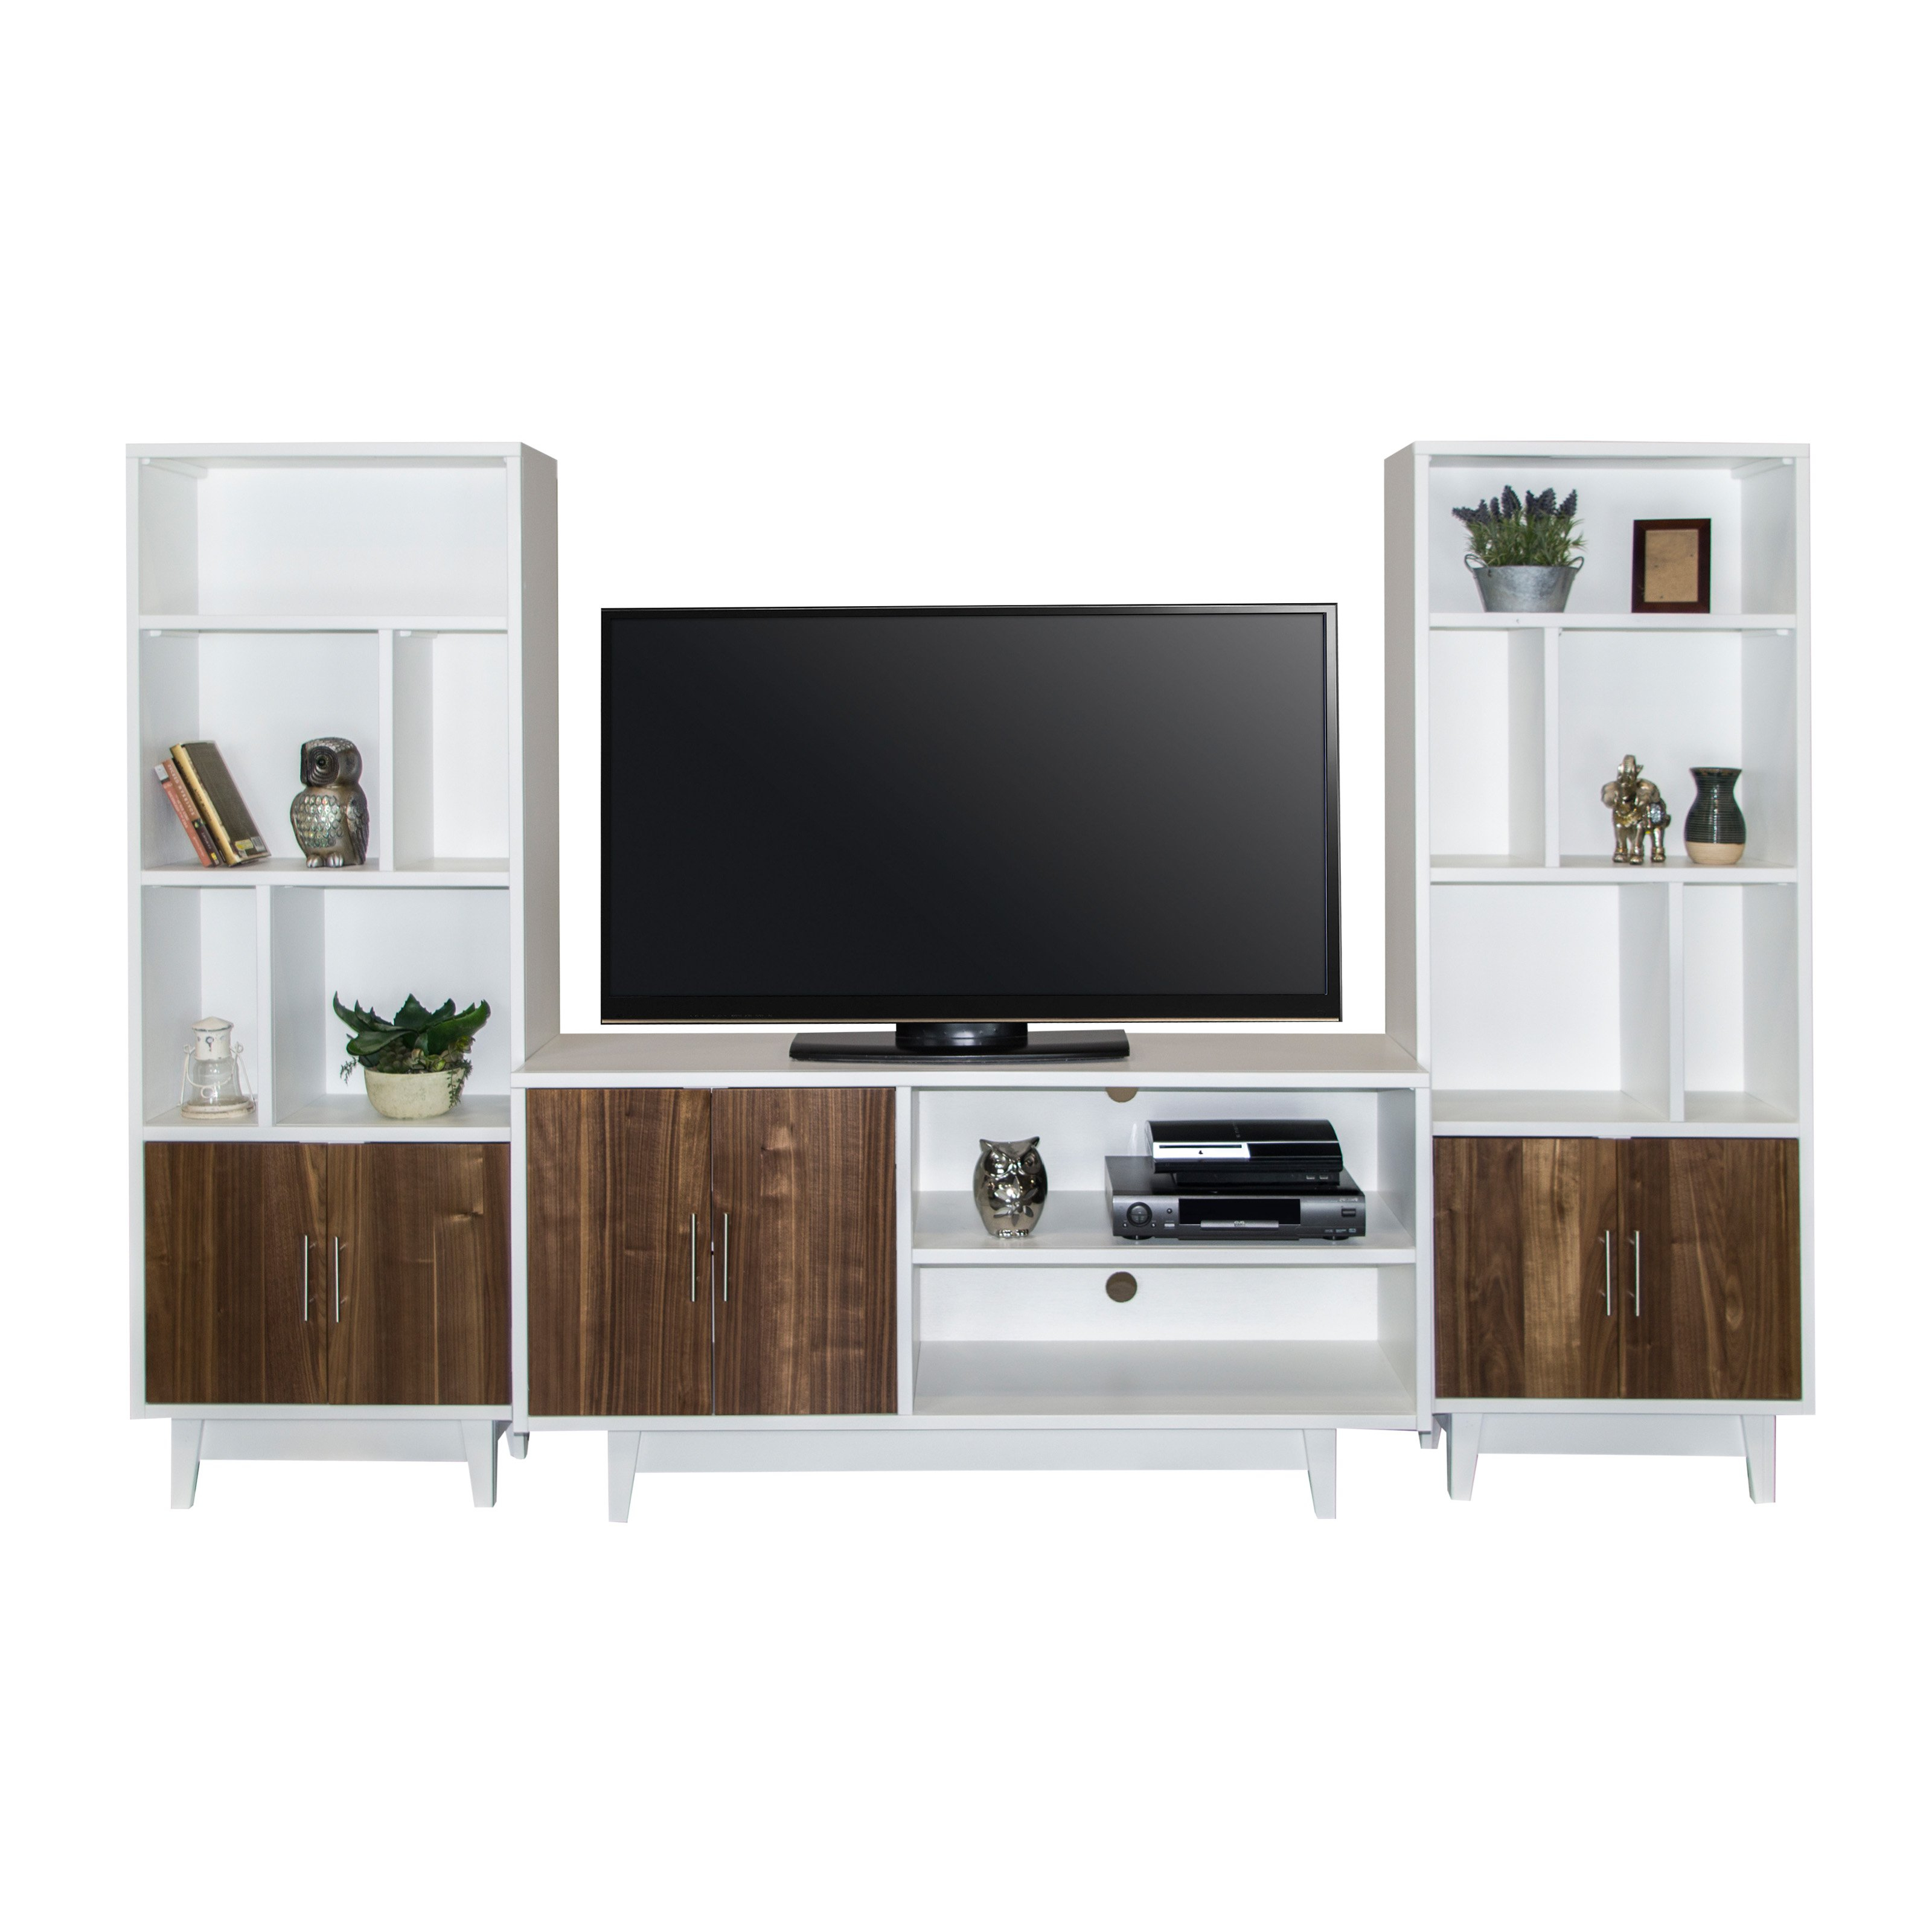 Legends Furniture Draper Contemporary Tv Console With Optional Wall Inside Draper 62 Inch Tv Stands (View 11 of 20)